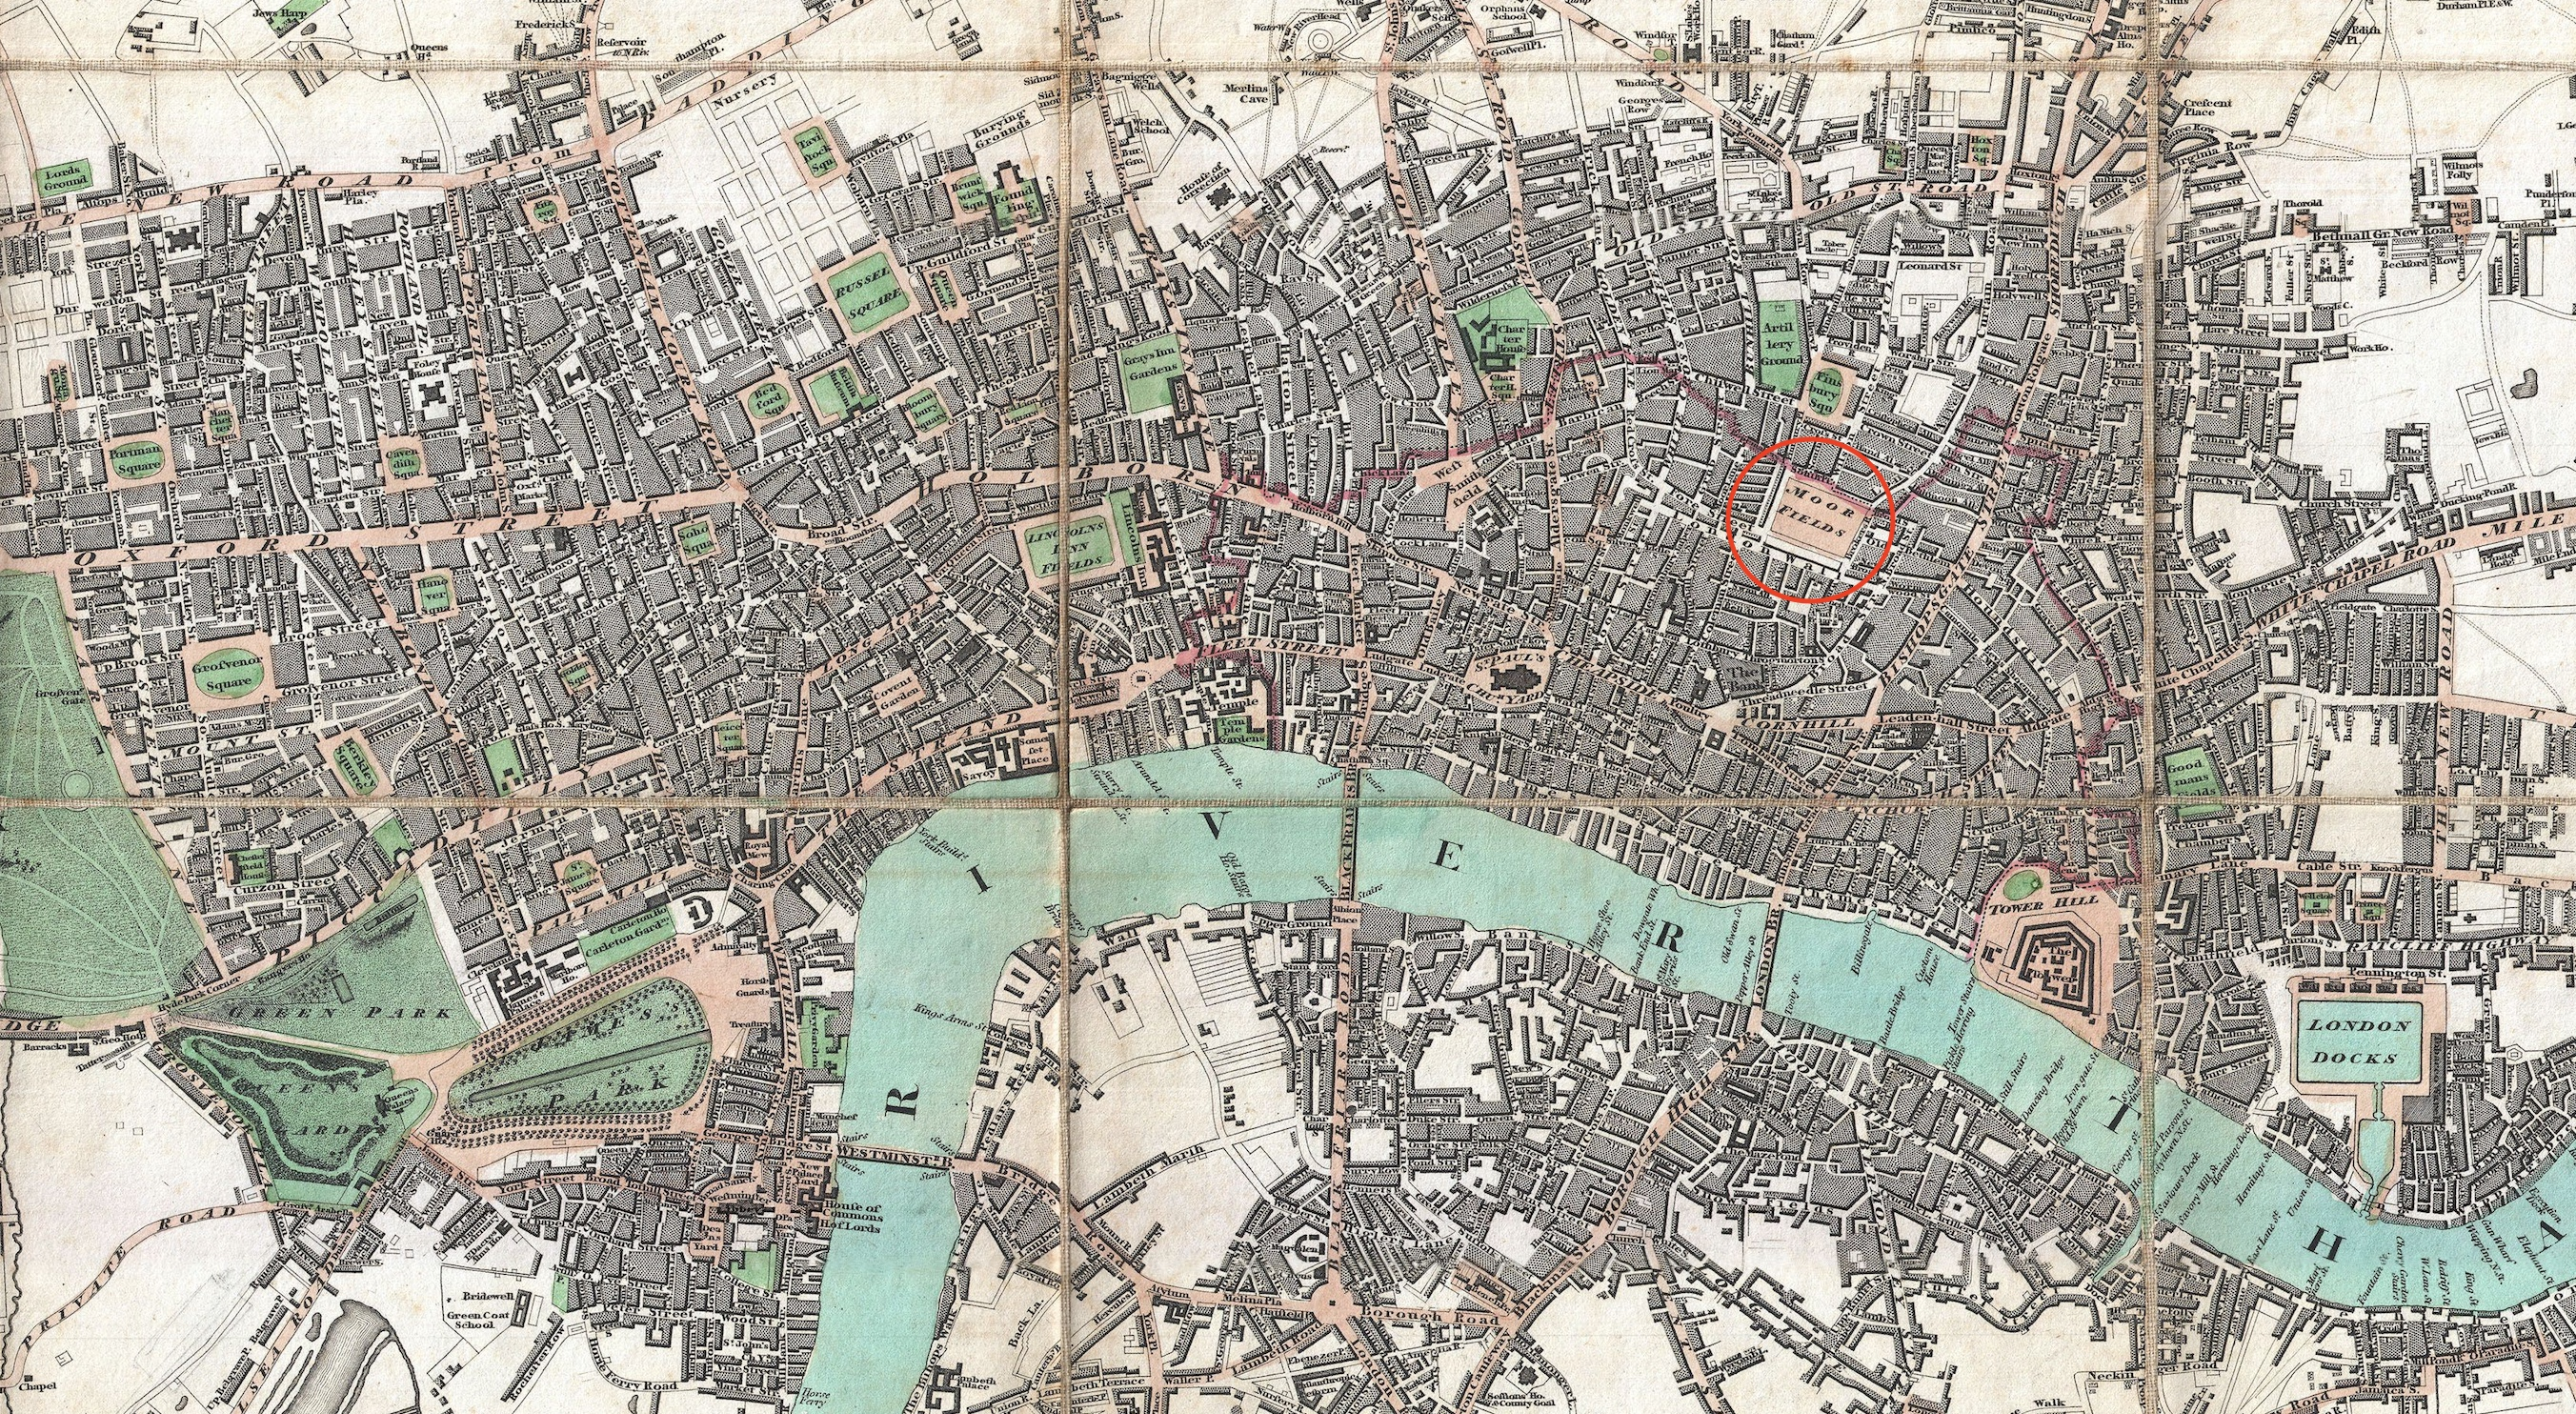 Moorfields area of London, Edward Mogg's1806 map. Click to enlarge.